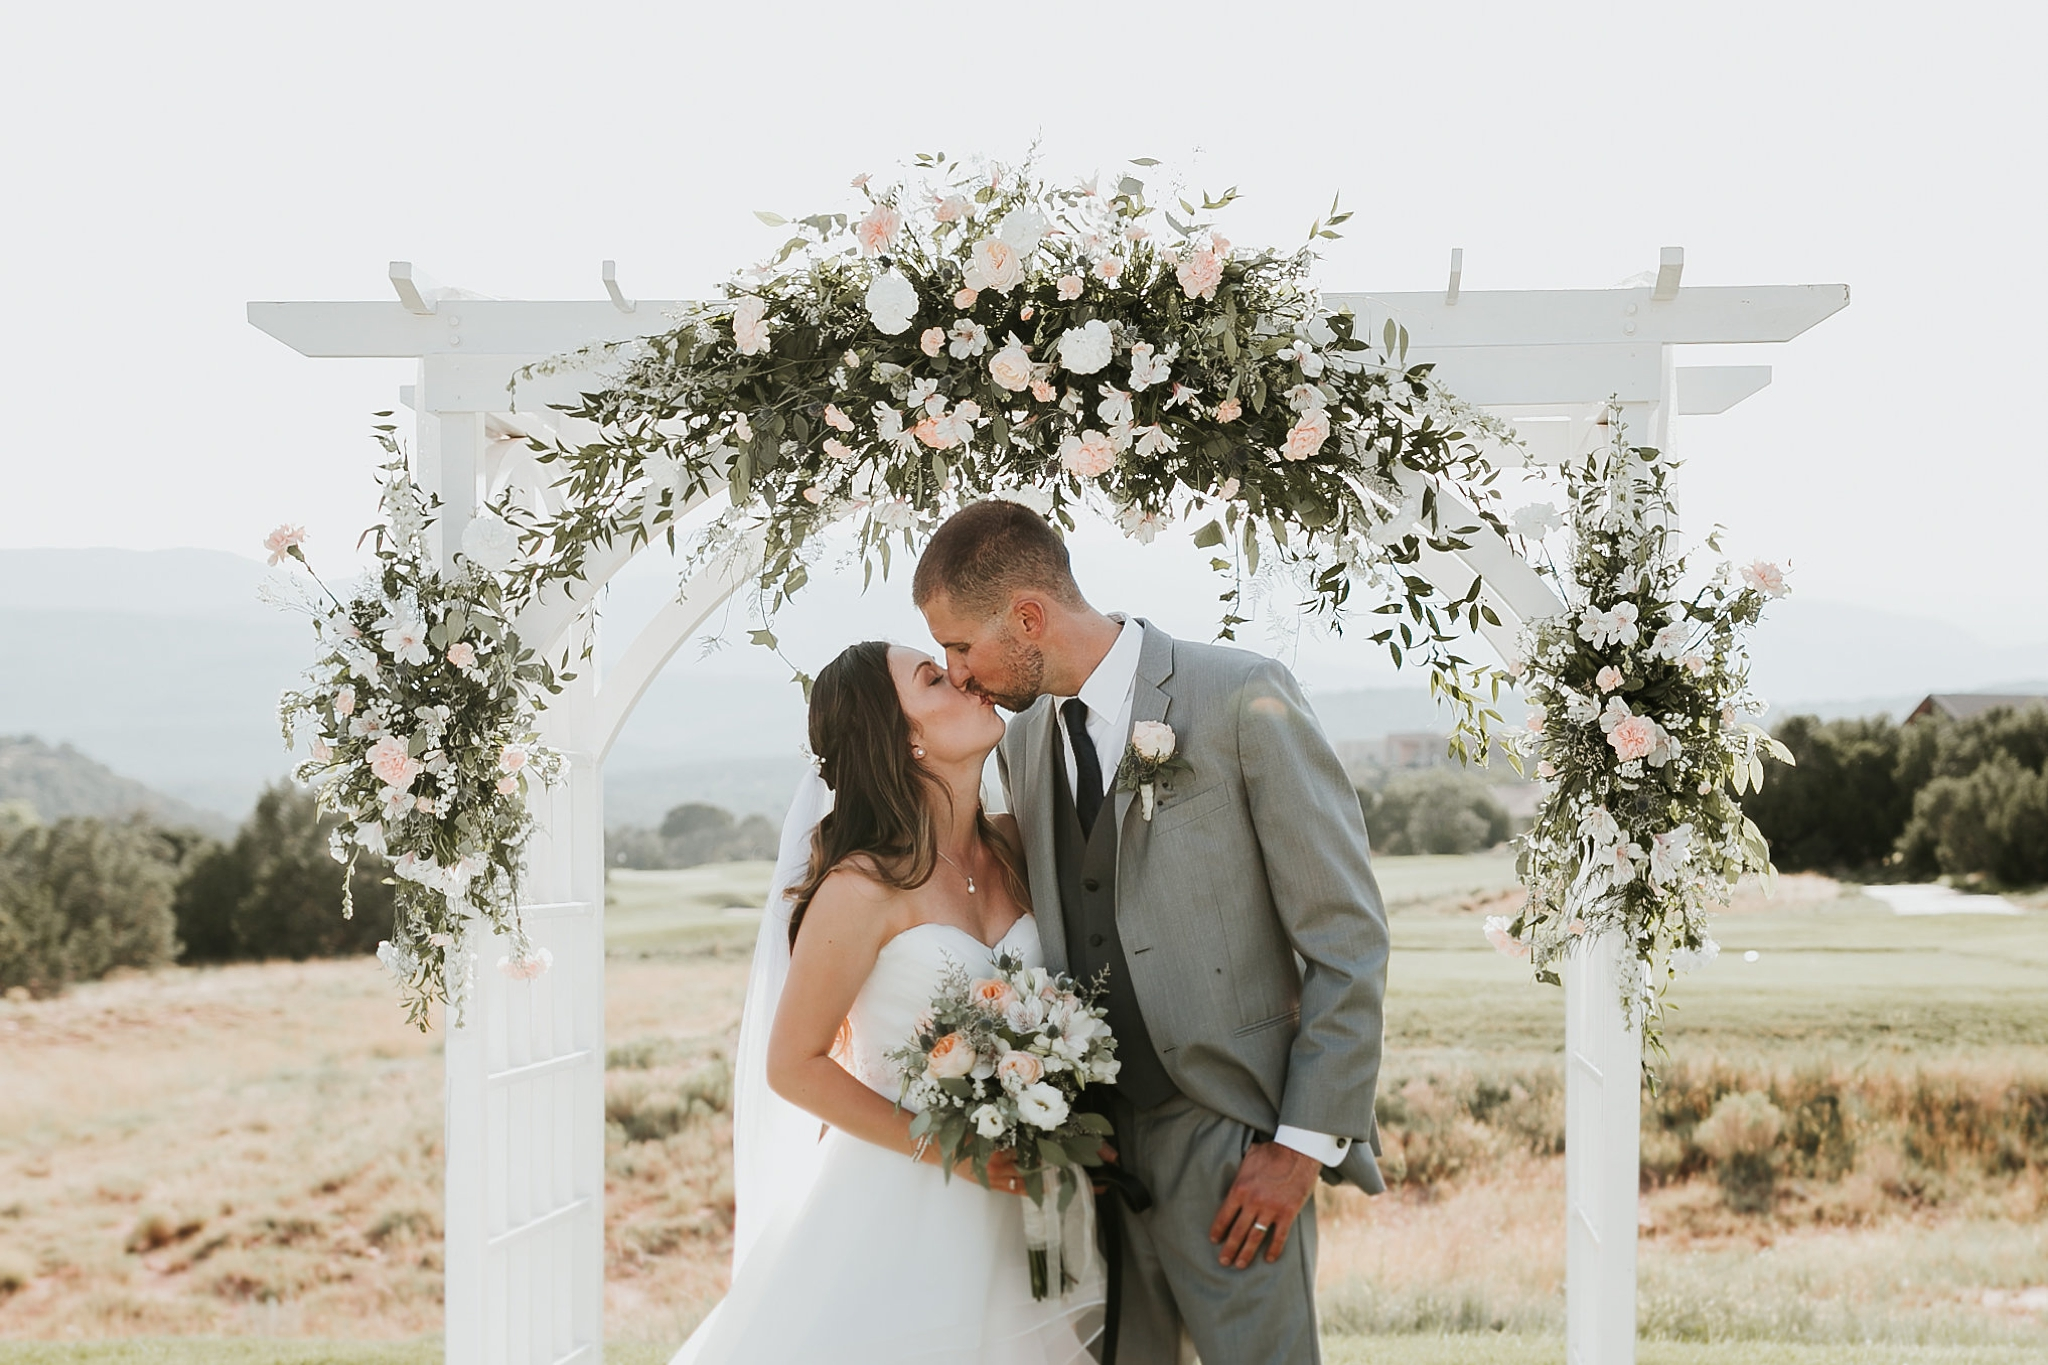 Alicia+lucia+photography+-+albuquerque+wedding+photographer+-+santa+fe+wedding+photography+-+new+mexico+wedding+photographer+-+new+mexico+wedding+-+summer+wedding+-+summer+wedding+florals+-+southwest+wedding_0115.jpg